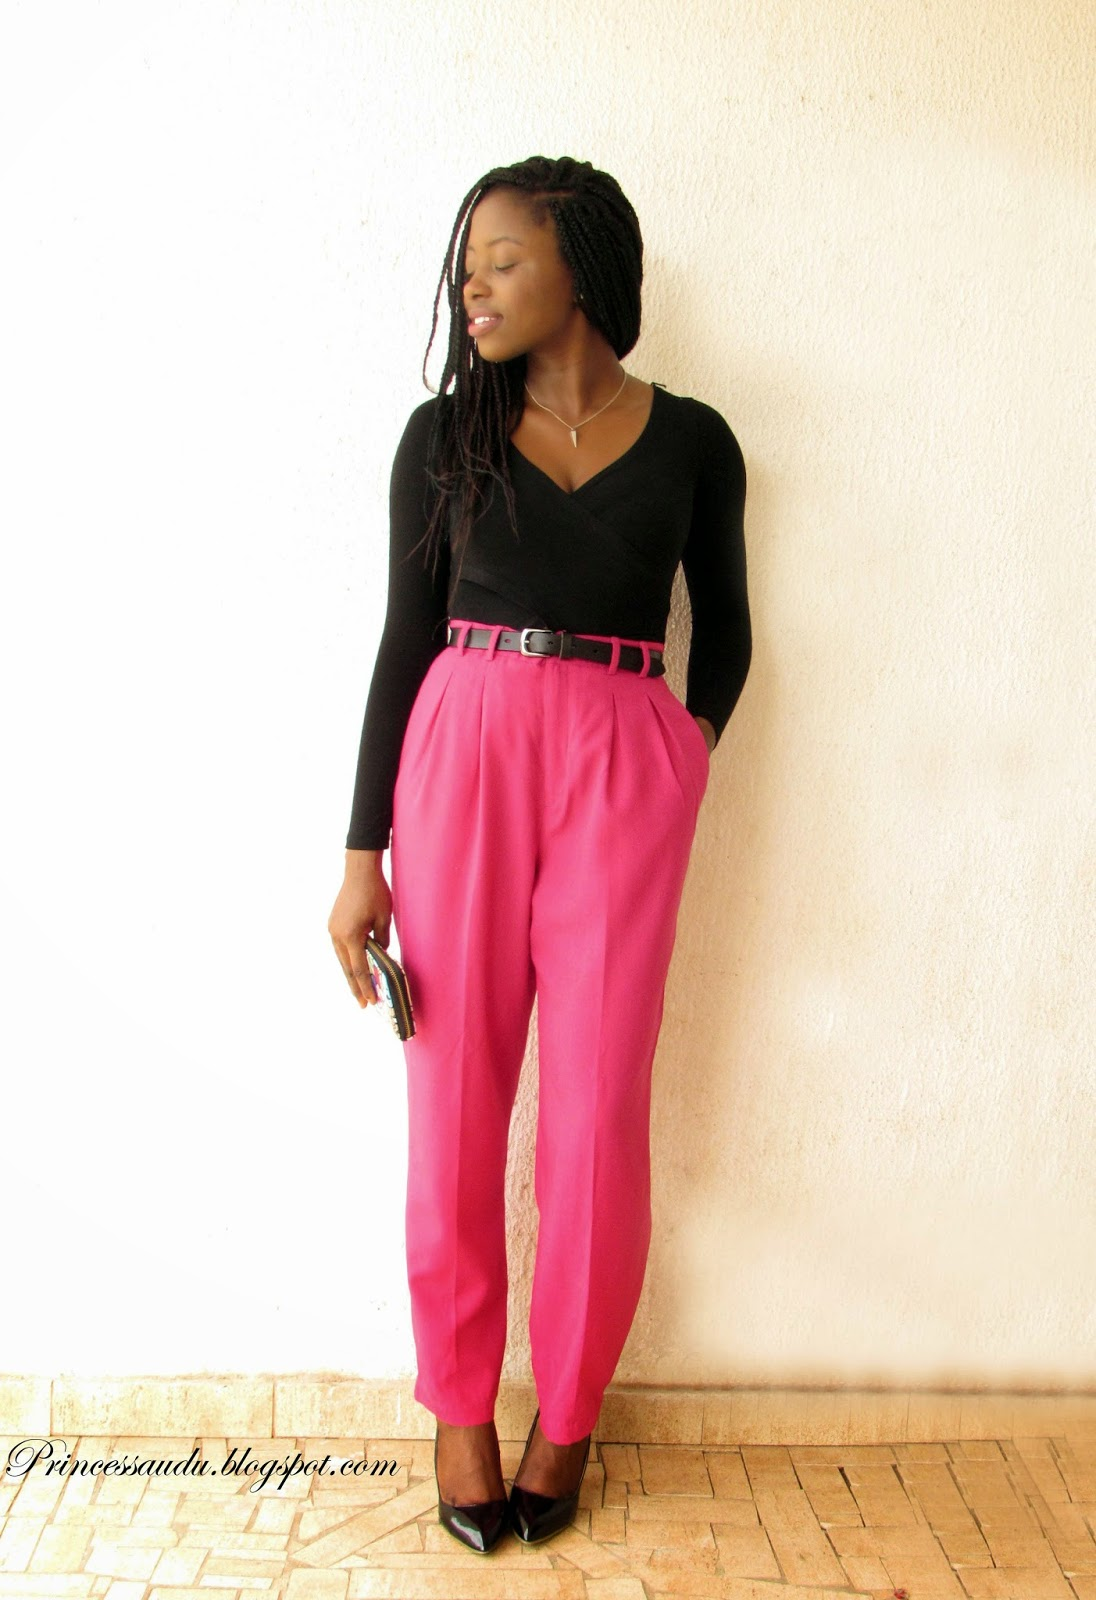 high-waist trousers, black pumps, pink, vintage, date night